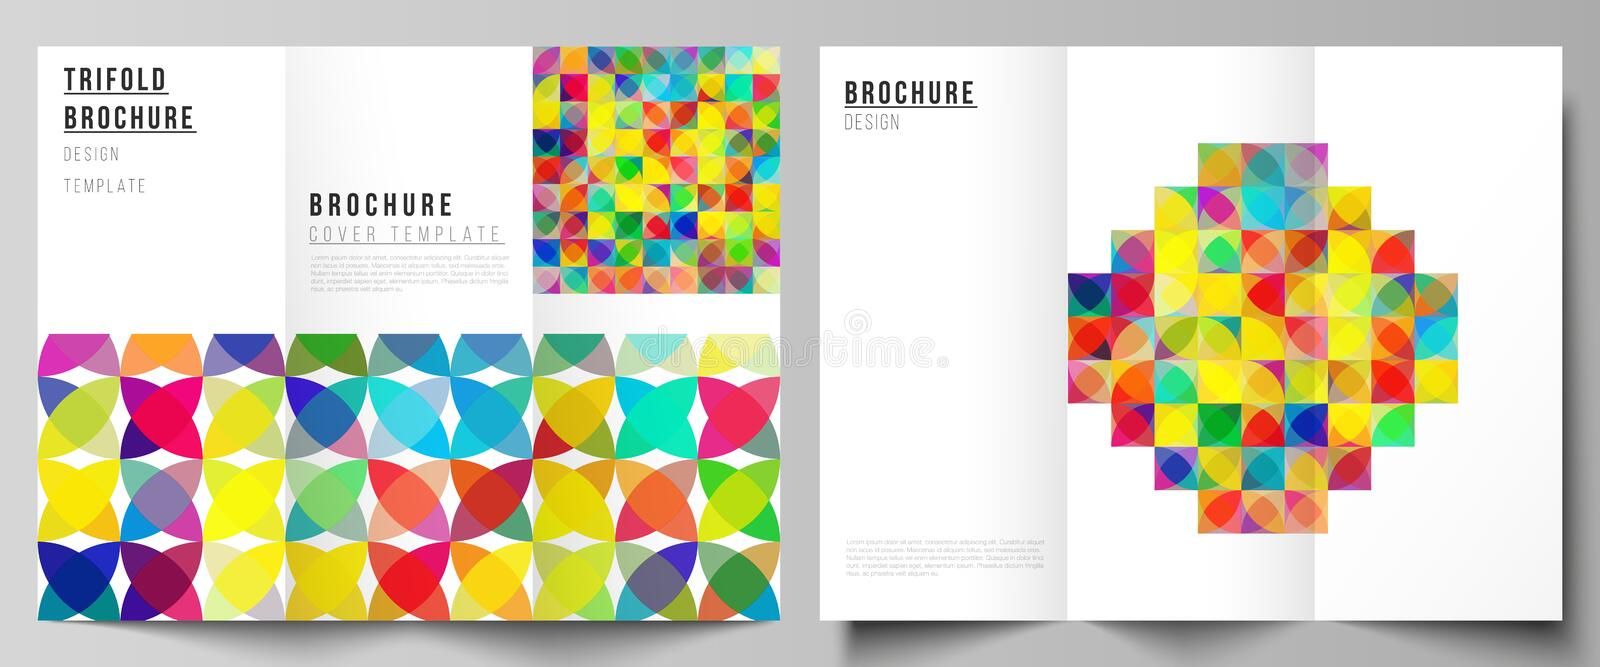 The minimal vector illustration layouts. Modern creative covers design templates for trifold brochure or flyer. Abstract. Background, geometric mosaic pattern royalty free illustration